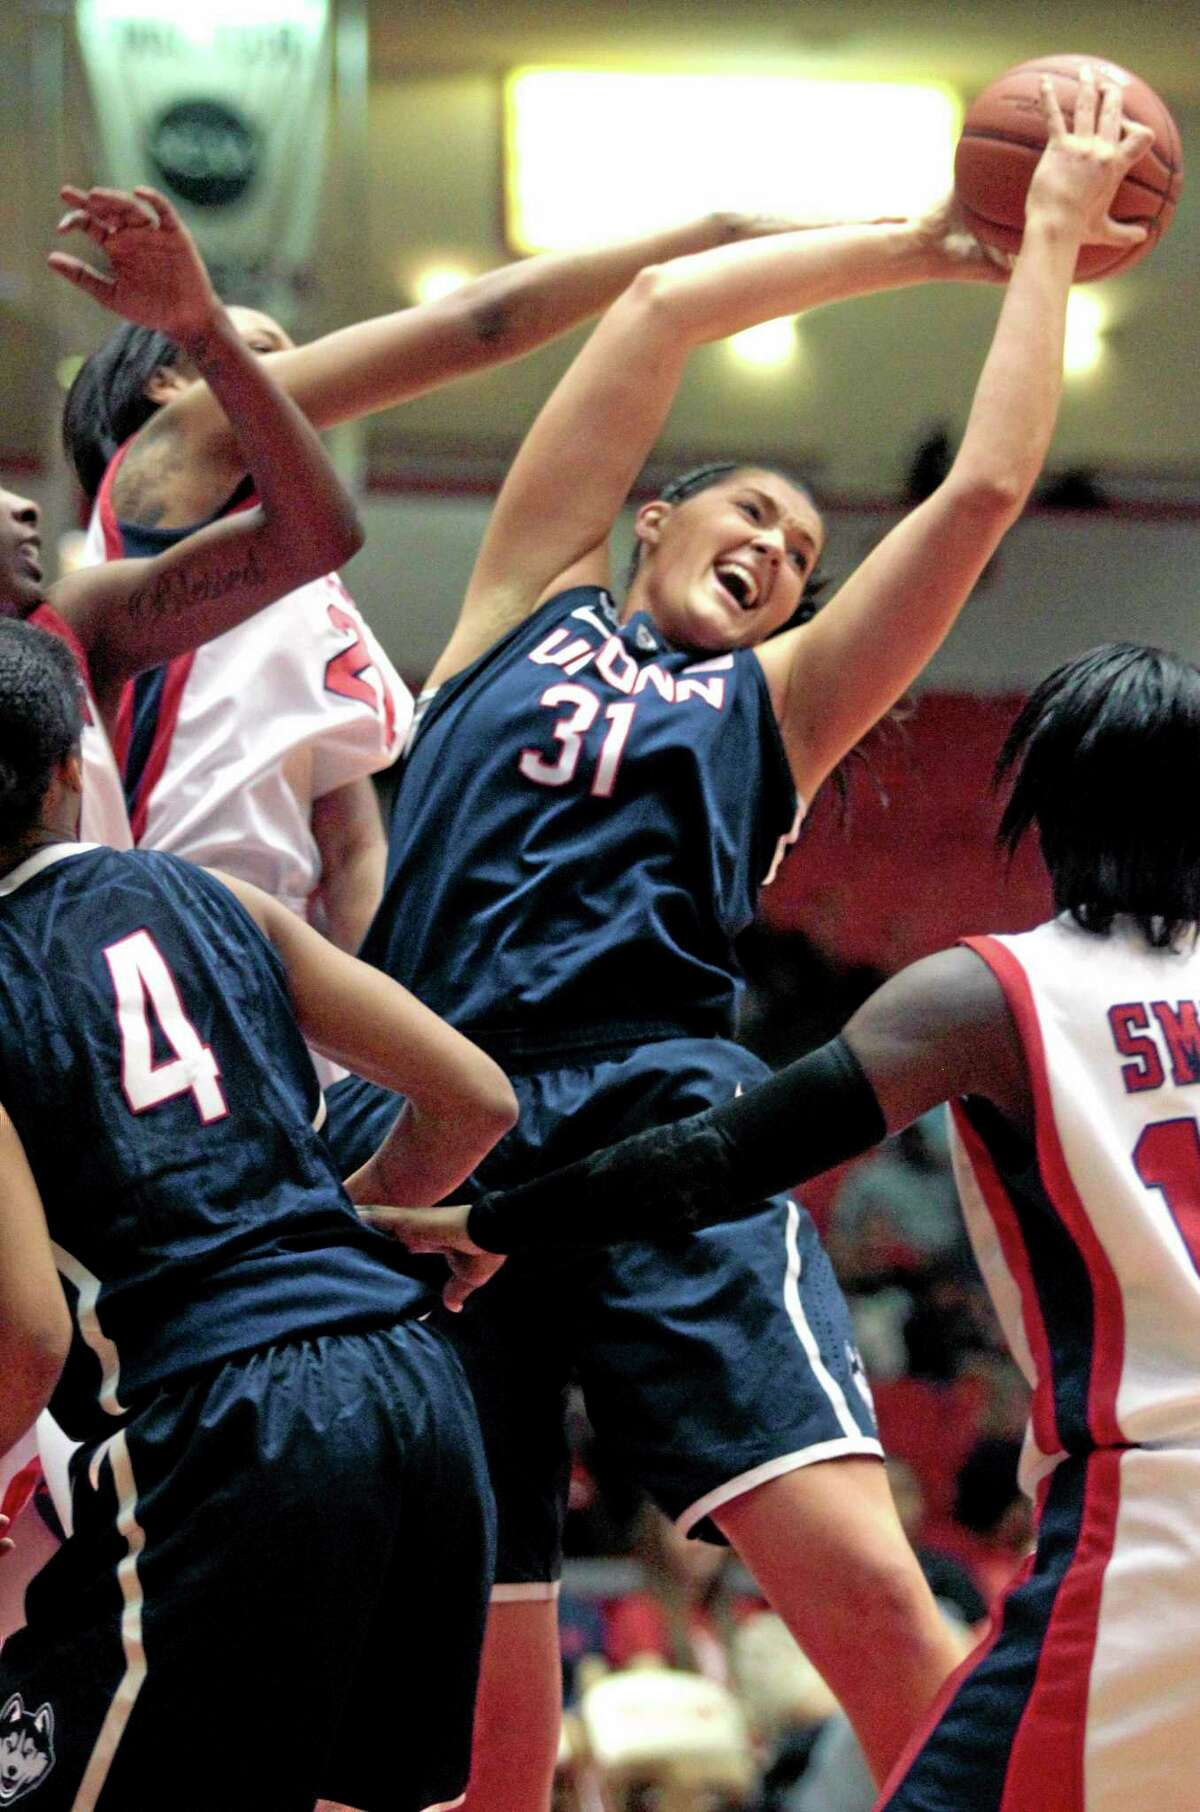 UConn center Stefanie Dolson brings down a rebound during the first half of the No. 1 Huskies' 92-41 win at Houston on Saturday.